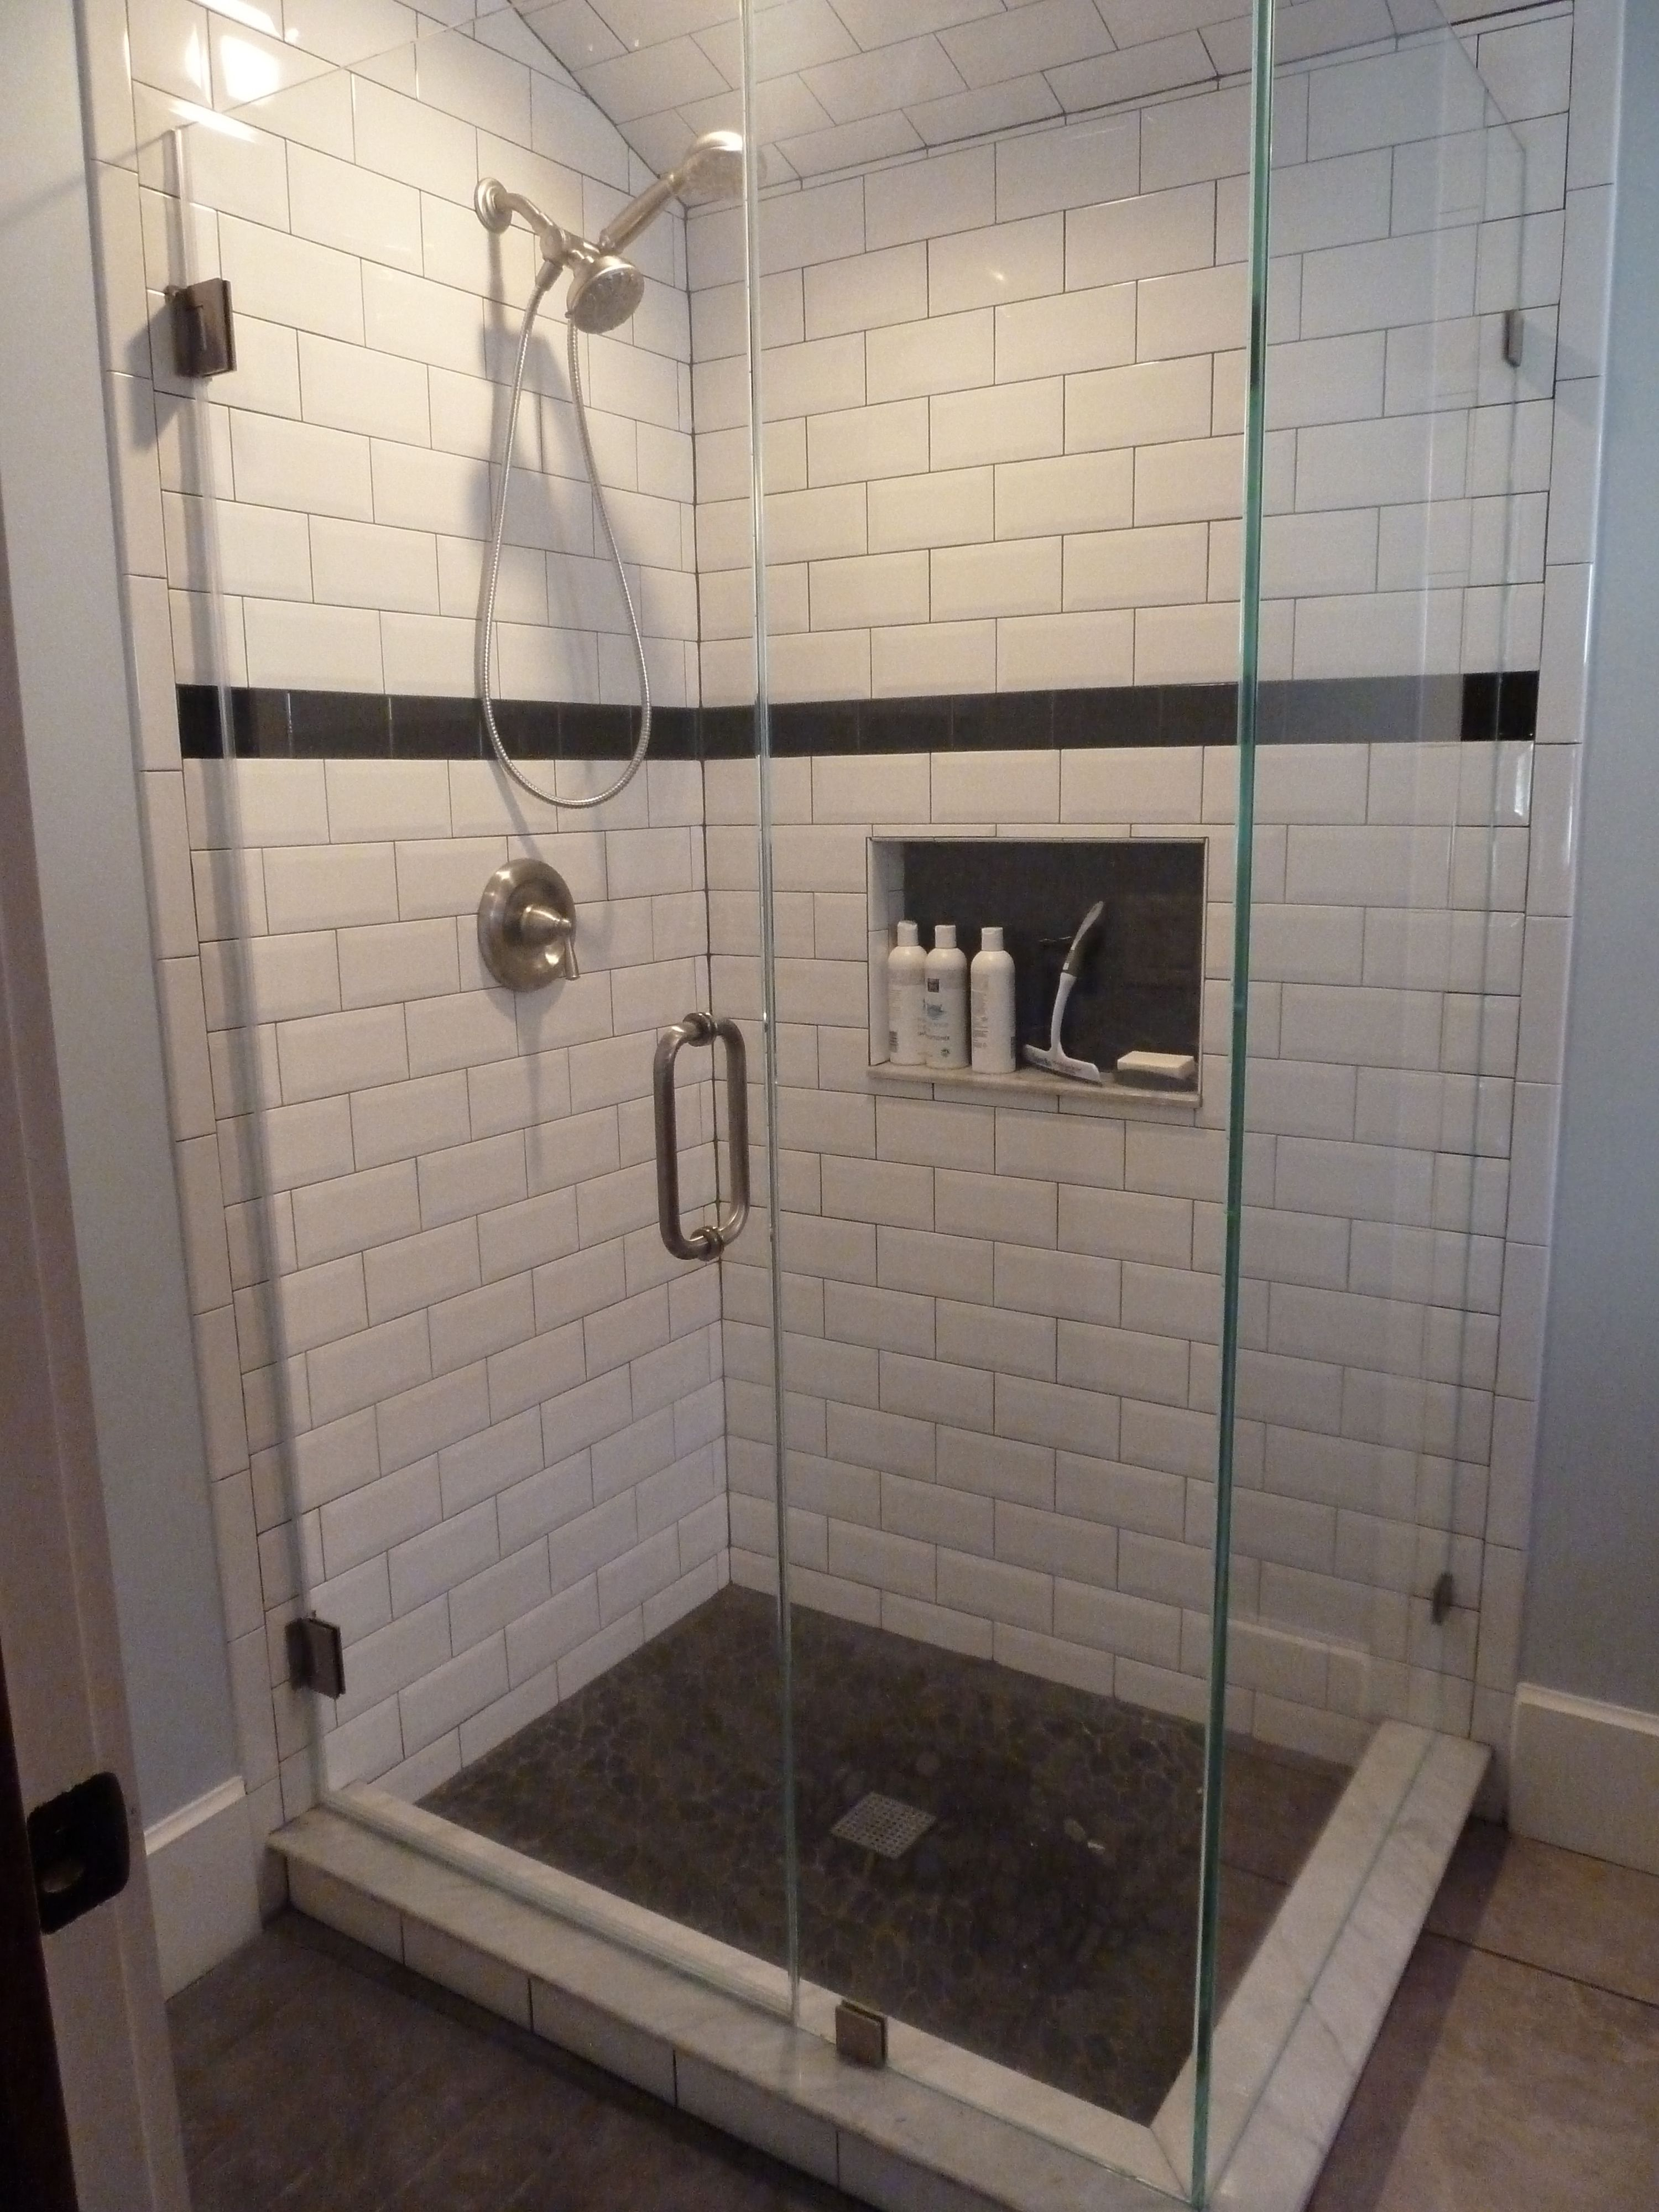 Large Beveled Subway Tile With Smaller Black Subway Tile As Accent Black Grout Black River Stone On Shower F Small Shower Remodel Shower Remodel Shower Tile